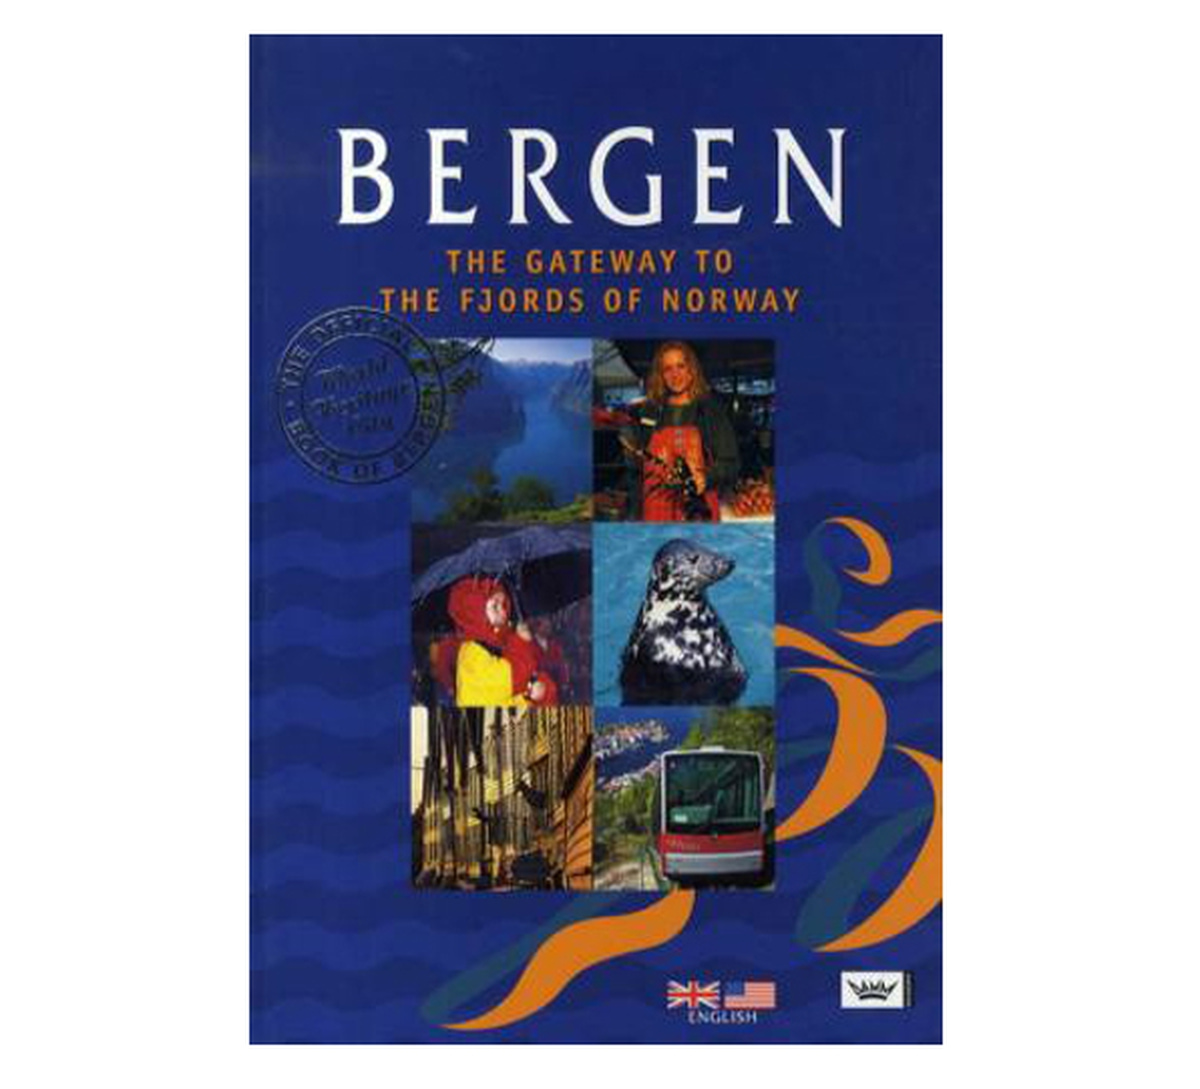 Bergen - The gateway to the fjords of Norway